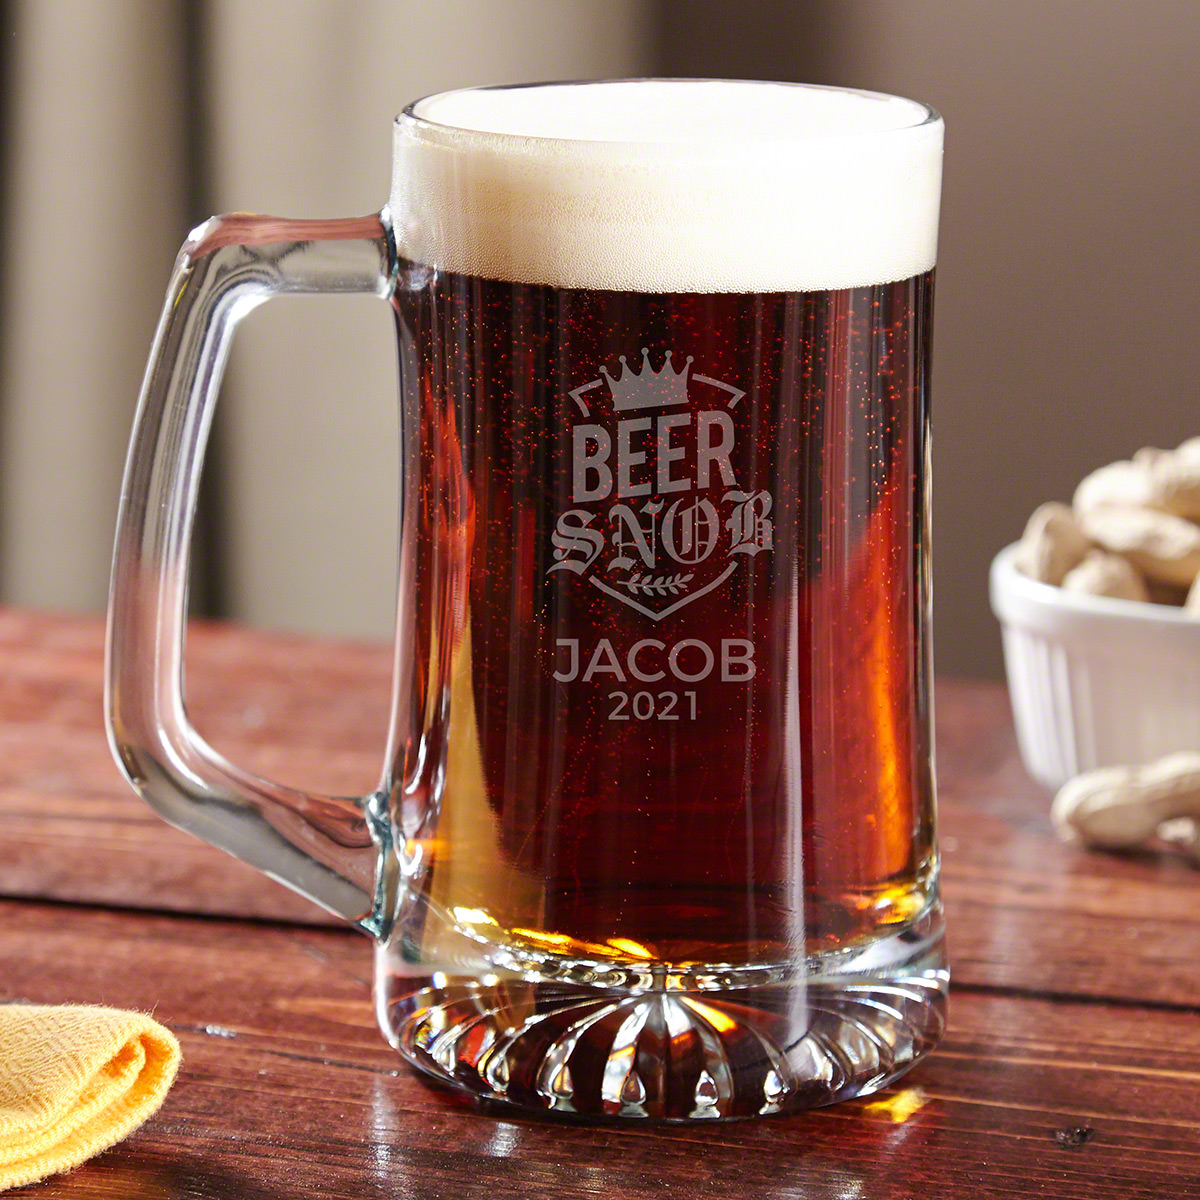 Do you know a beer snob who likes to show off their knowledge of all things beer? This personalized beer mug is the perfect gift for him! Comes personalized with a name and a year of your choosing. Now he can enjoy his beloved IPAs in the comfort of his h #mug